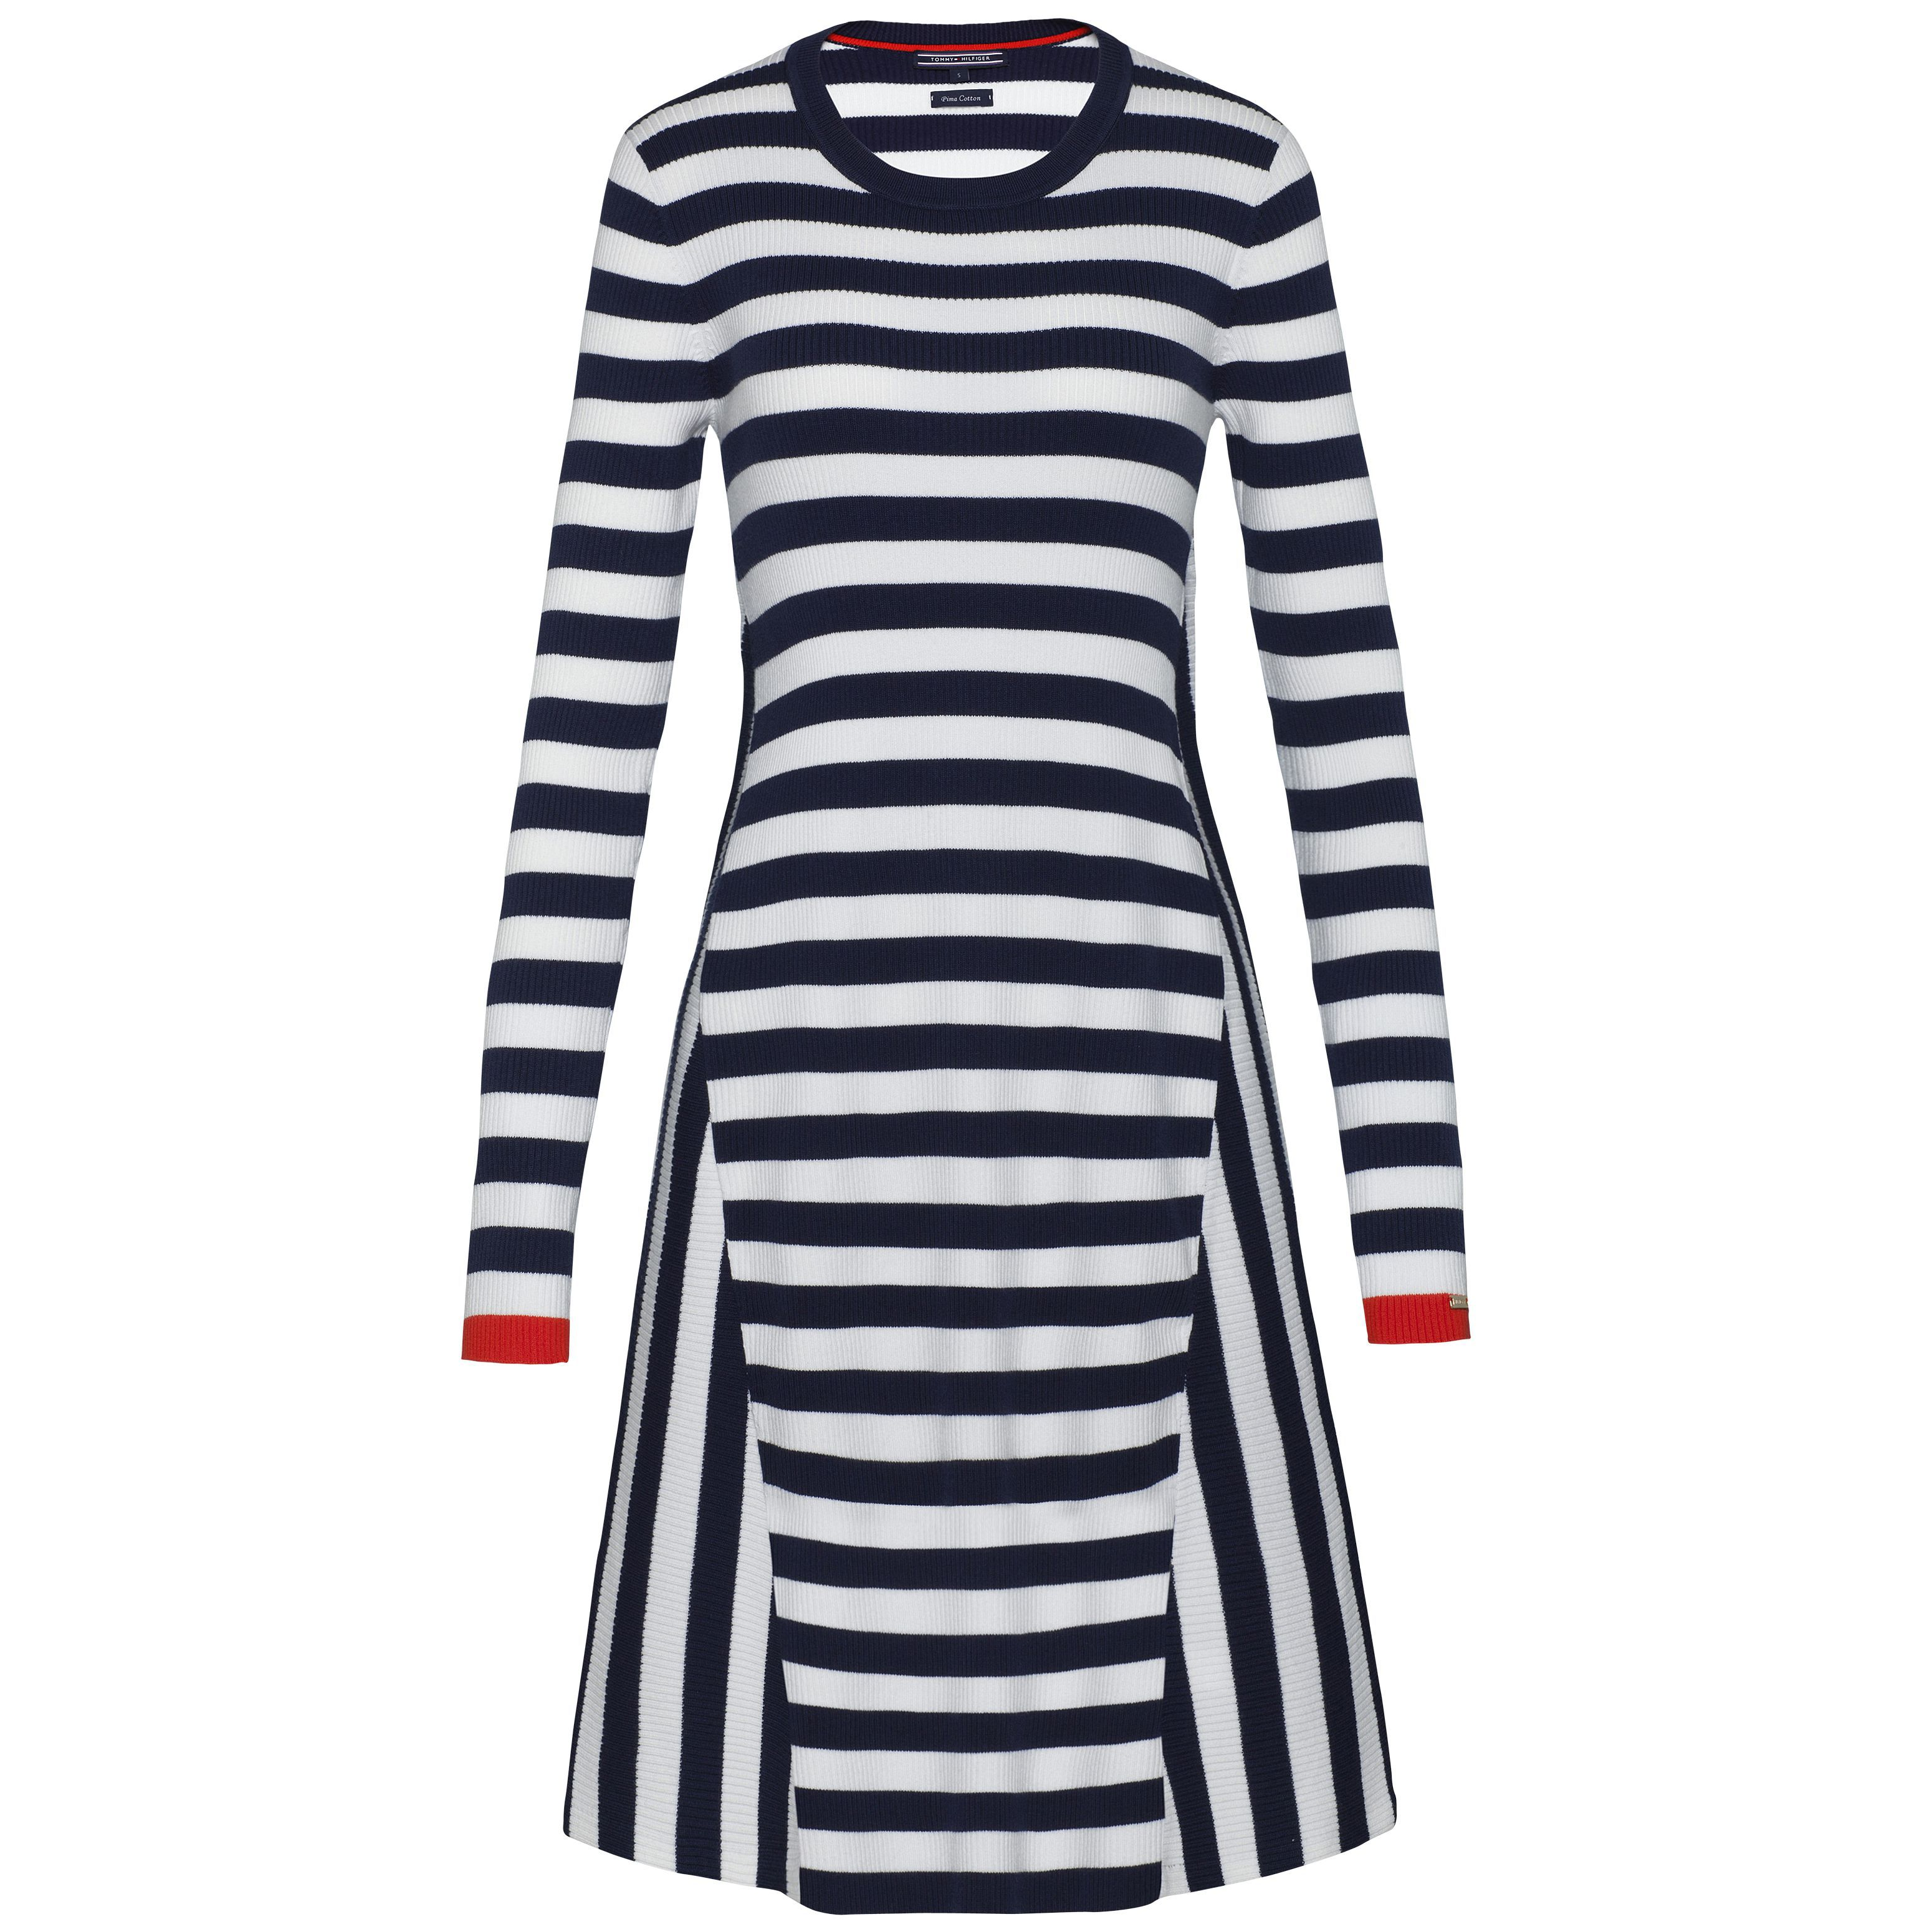 Tommy Hilfiger Etty Stripe Dress, White